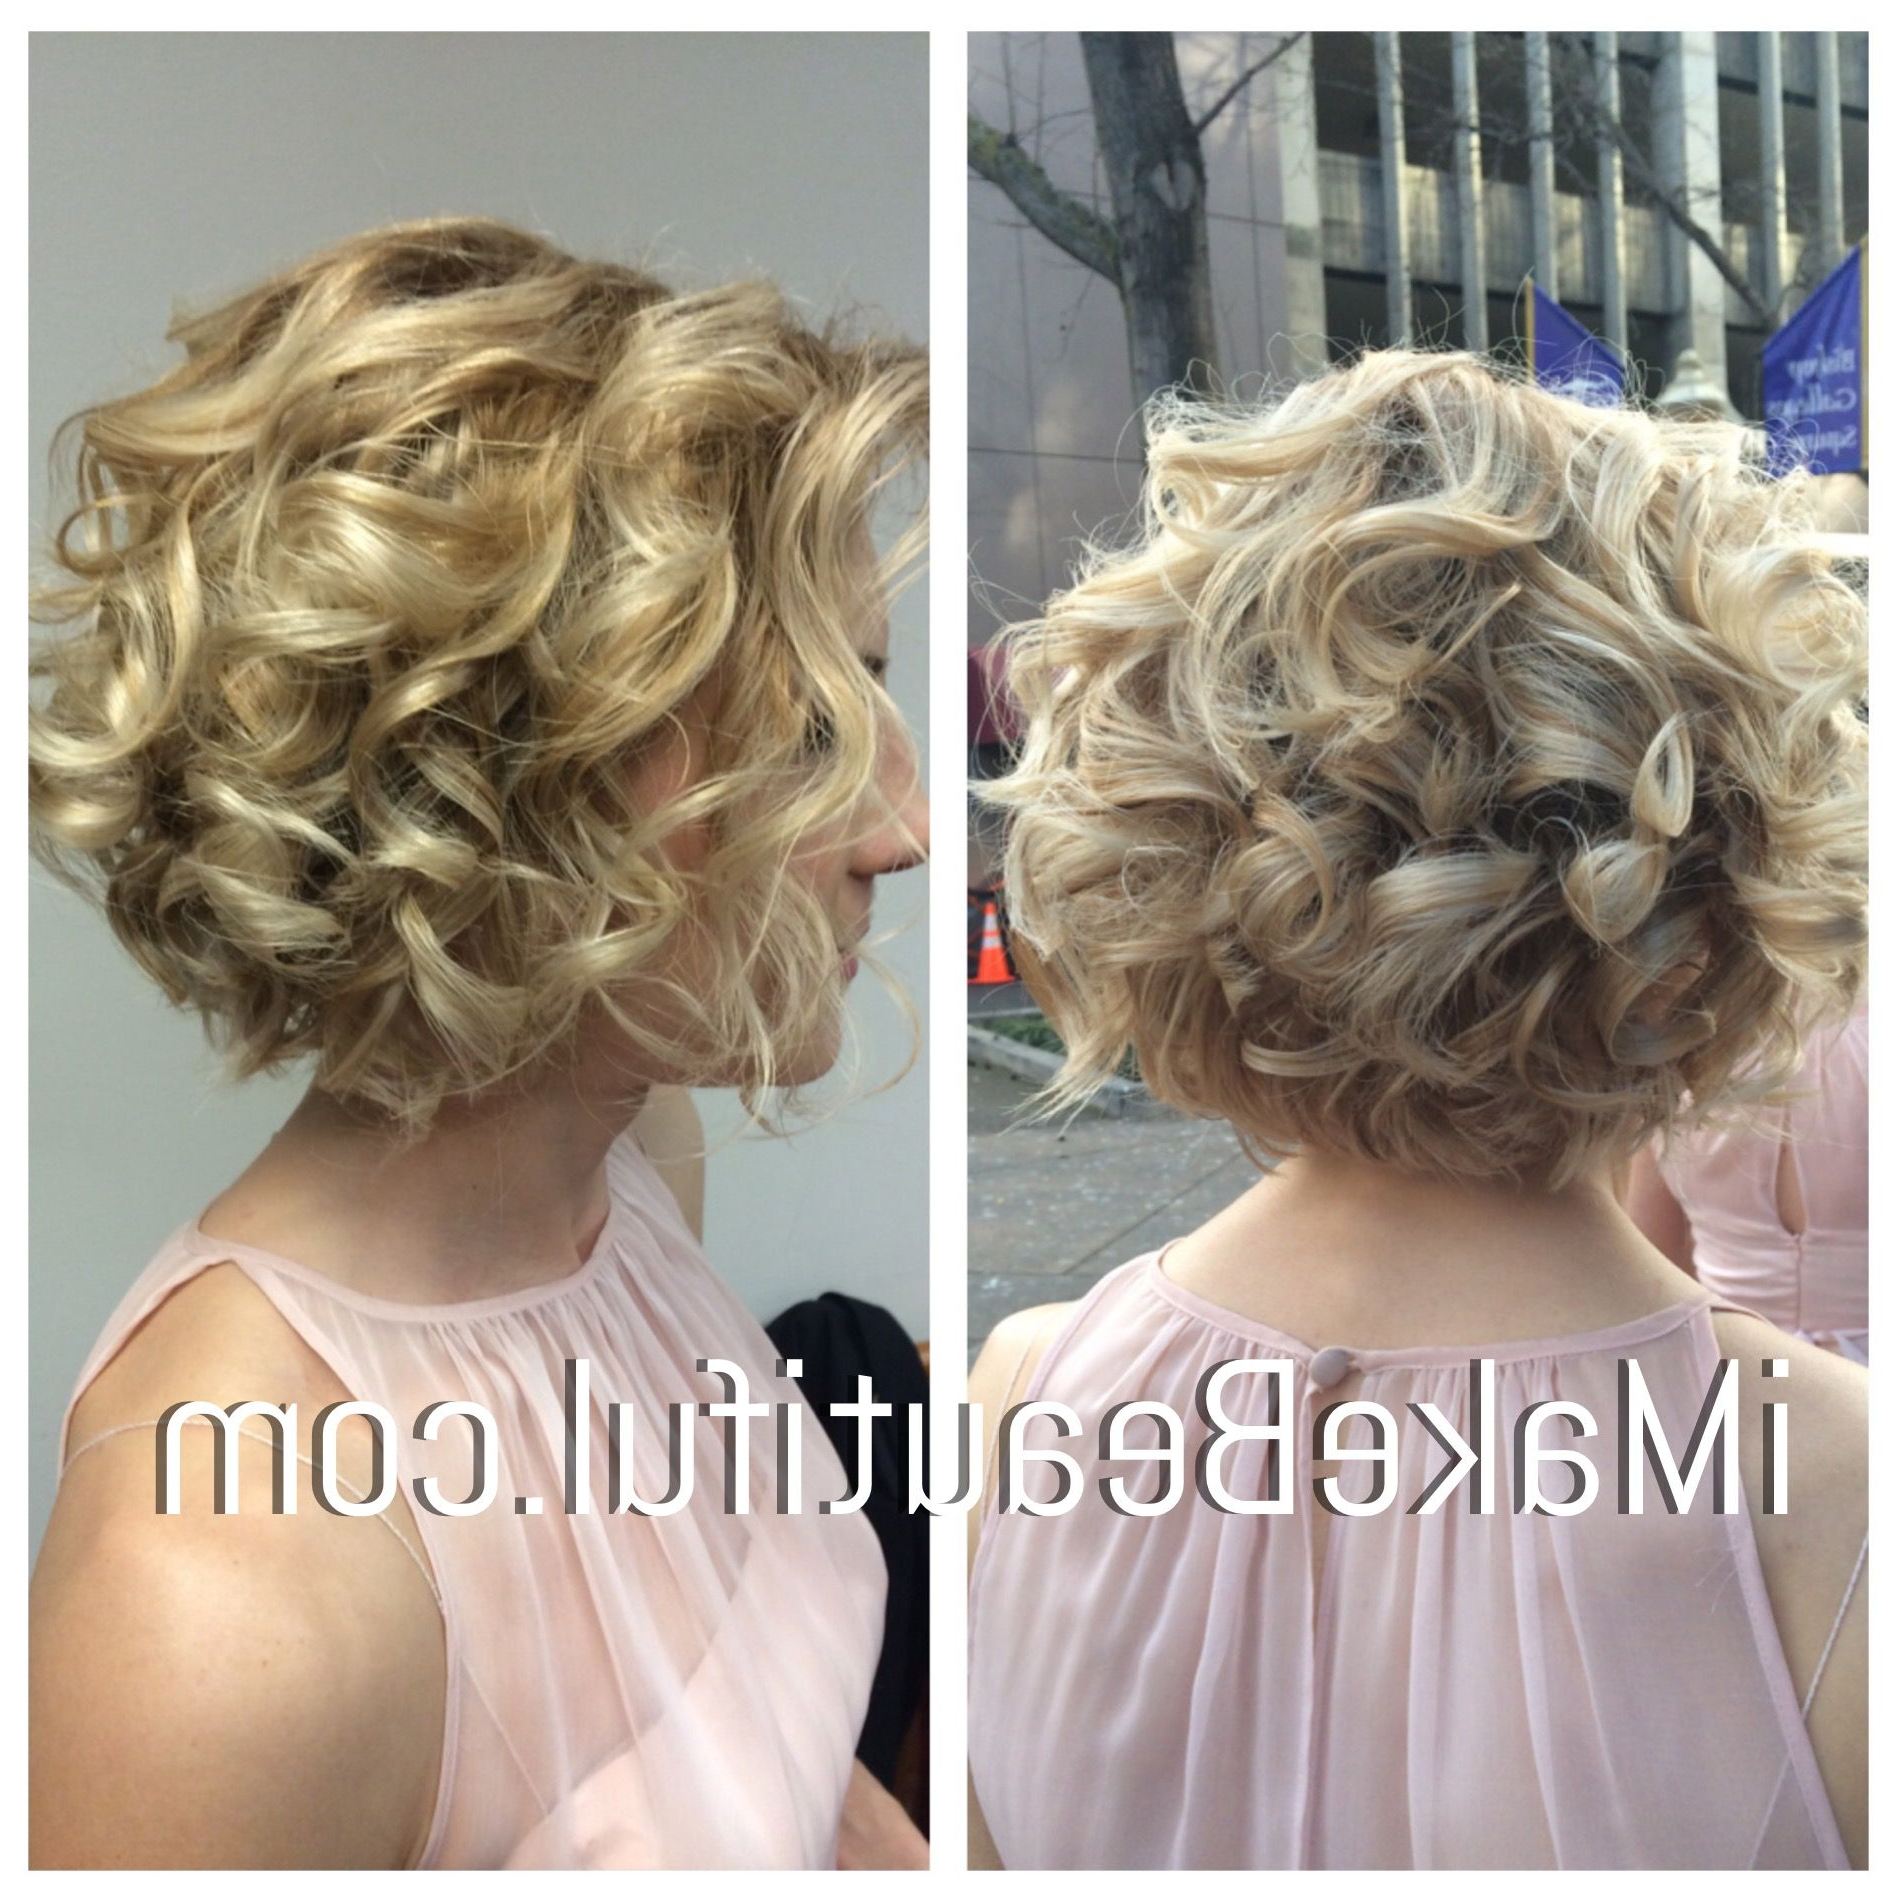 Bridal Hair For Short Hair (View 5 of 20)